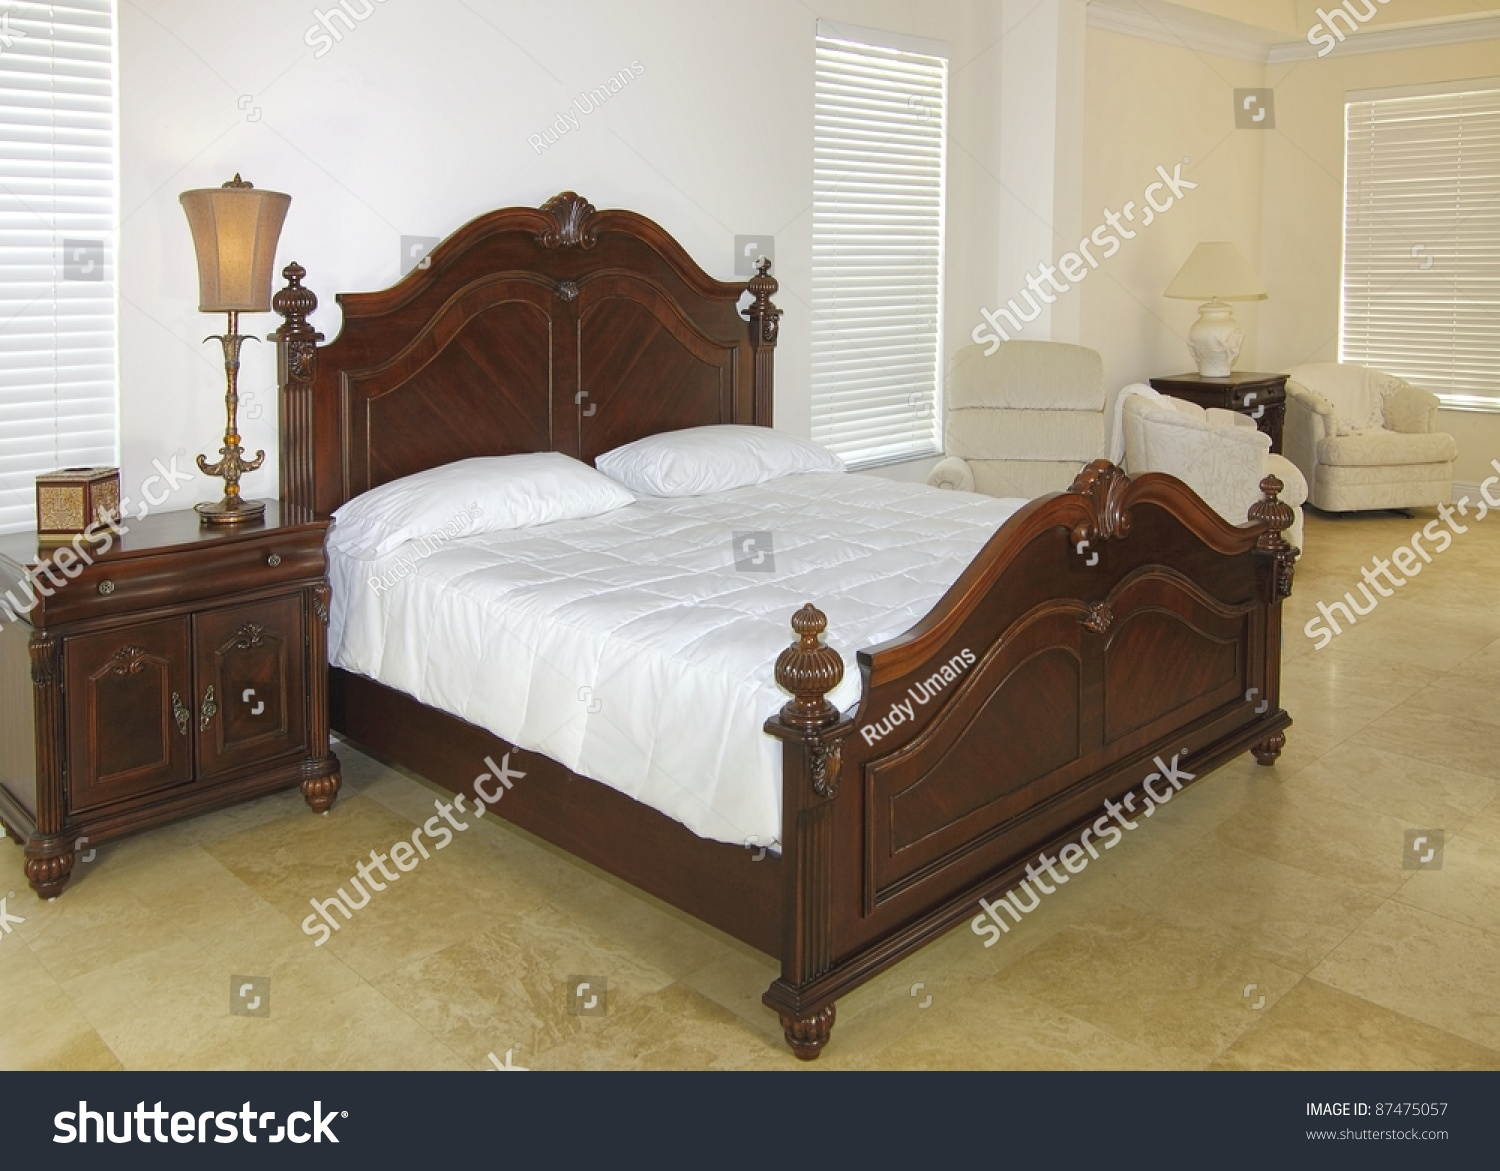 Overview Beautiful Classic Bedroom Suite Private Stock Photo 87475057    Shutterstock